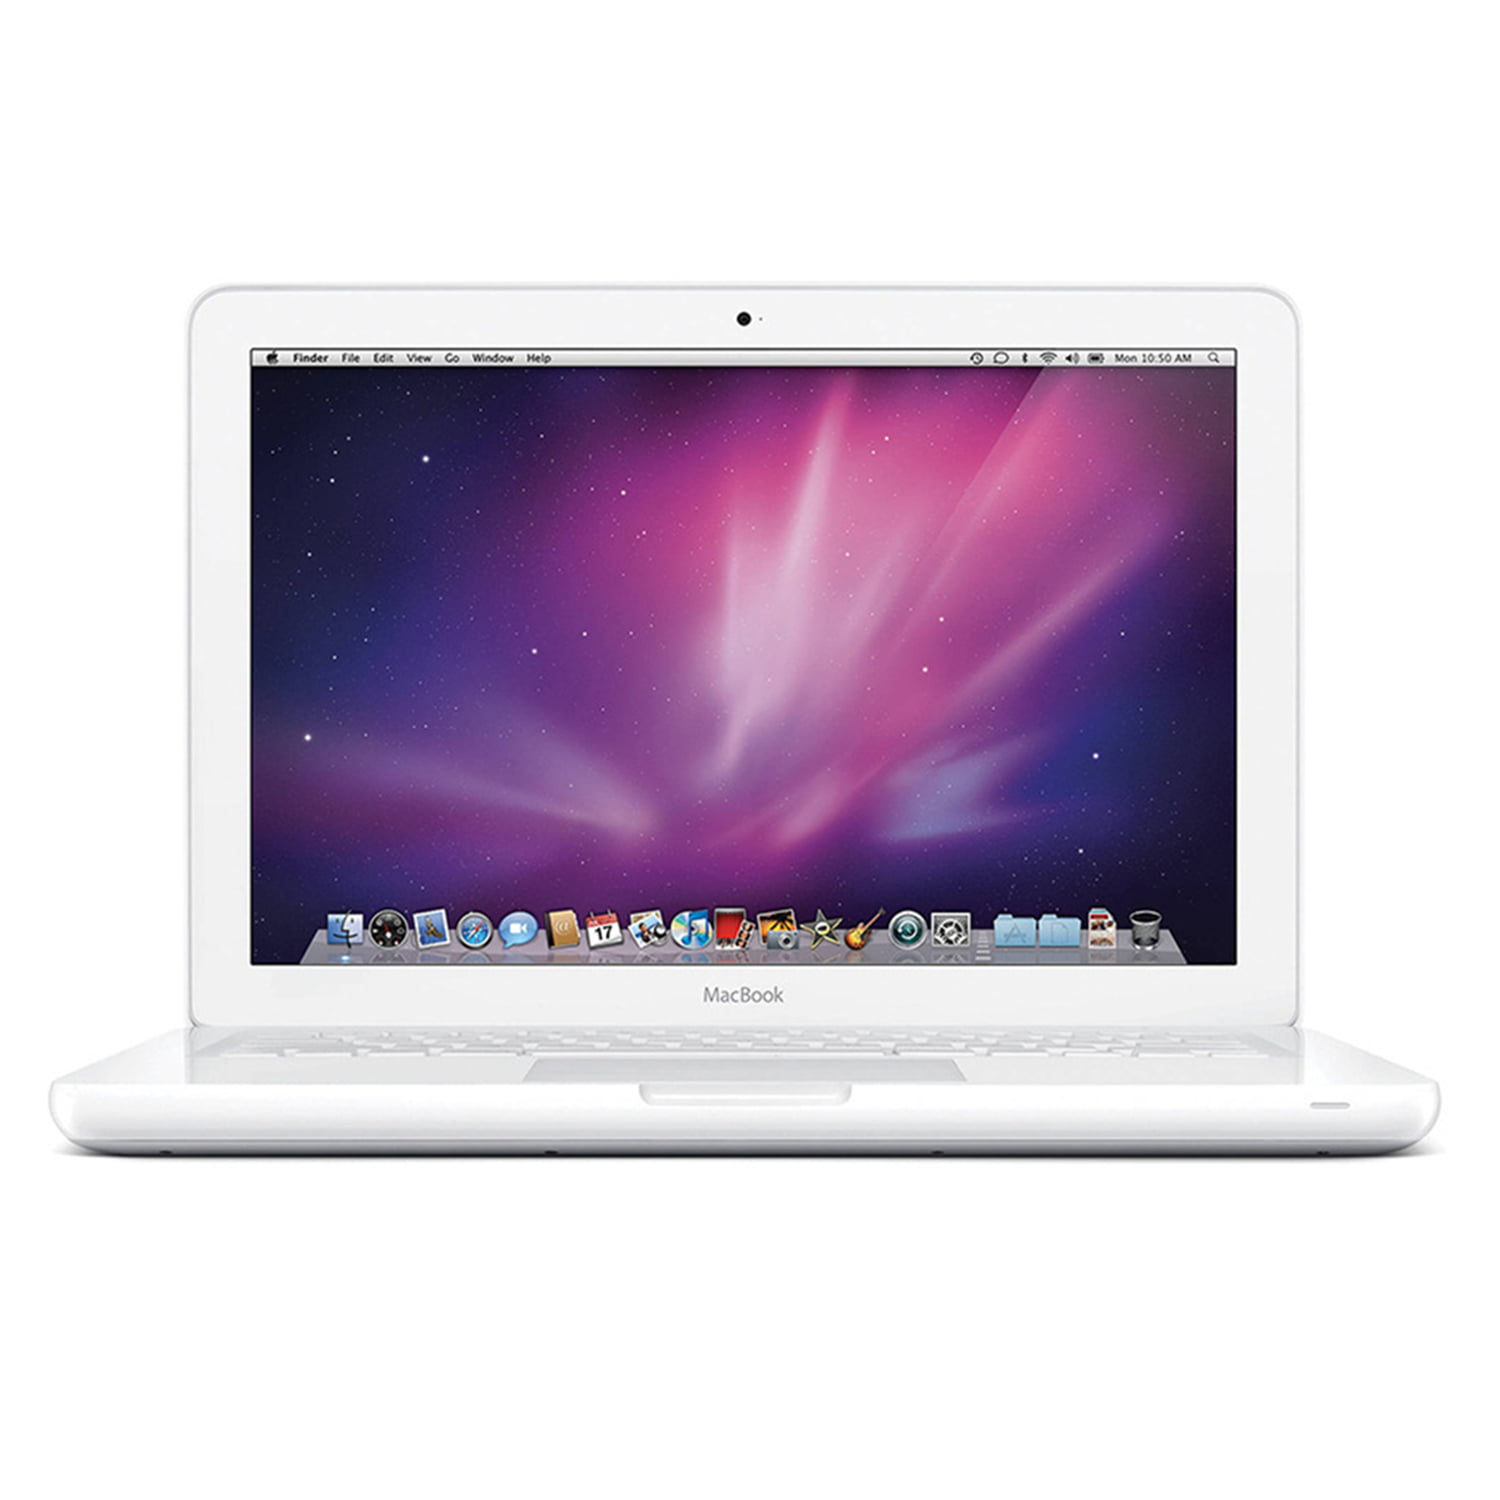 "Refurbished Apple Macbook 13.3"" LED Laptop Core 2 Duo P8600 2.4GHz OS X 2GB 250GB MC516LL/A"